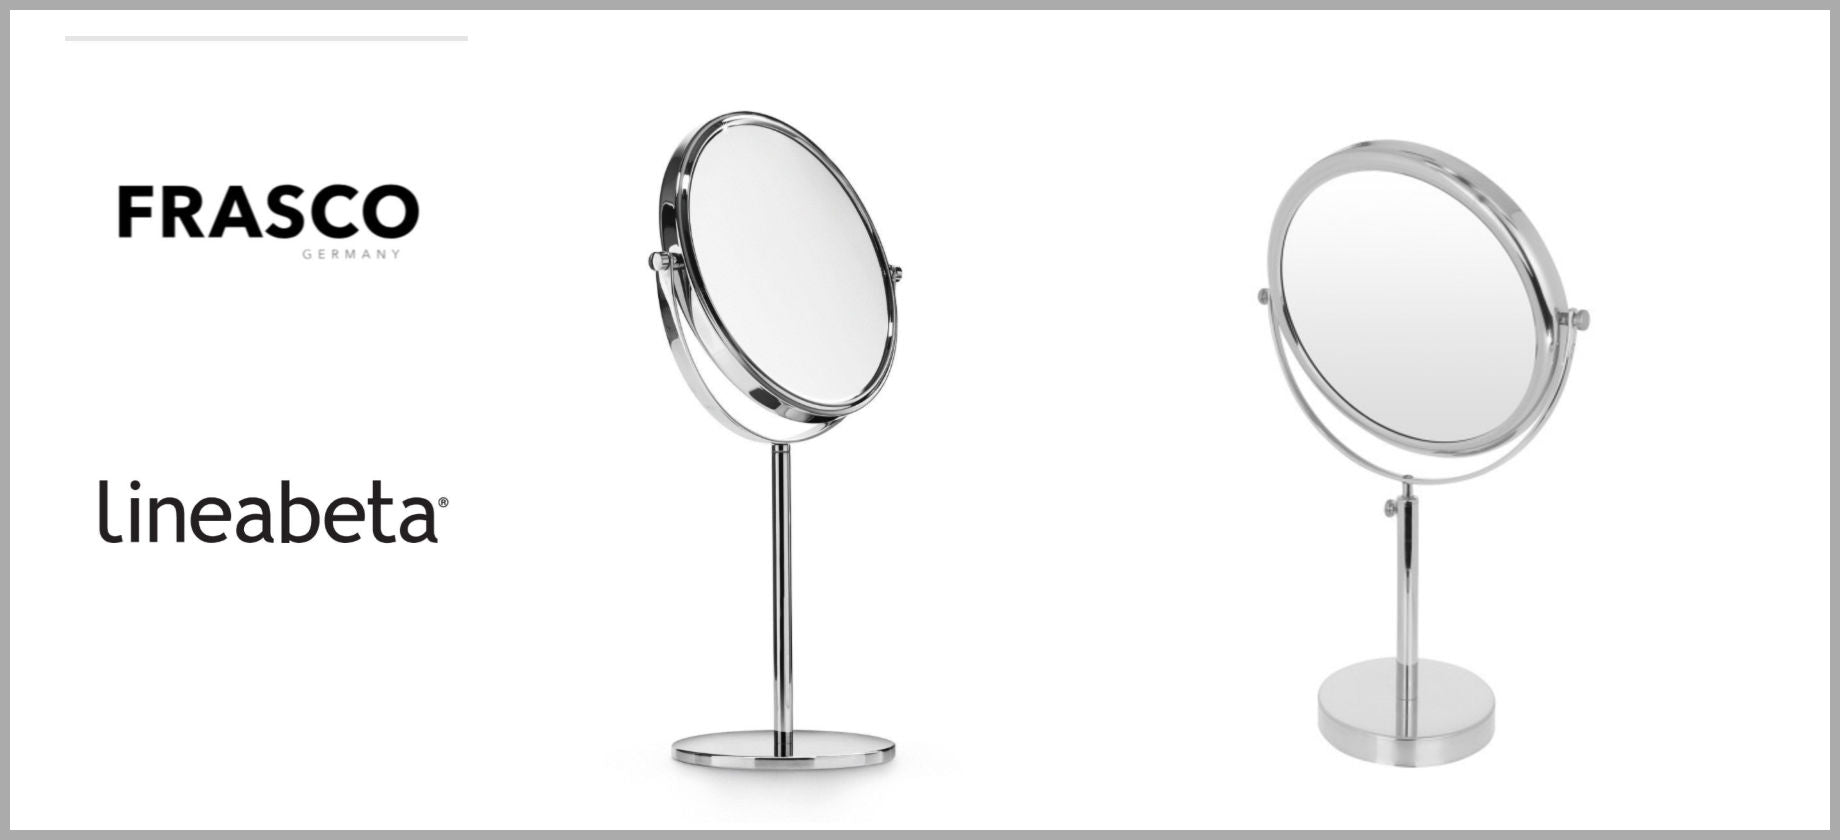 Frasco and Lineabeta Double-Sided Tabletop Mirrors